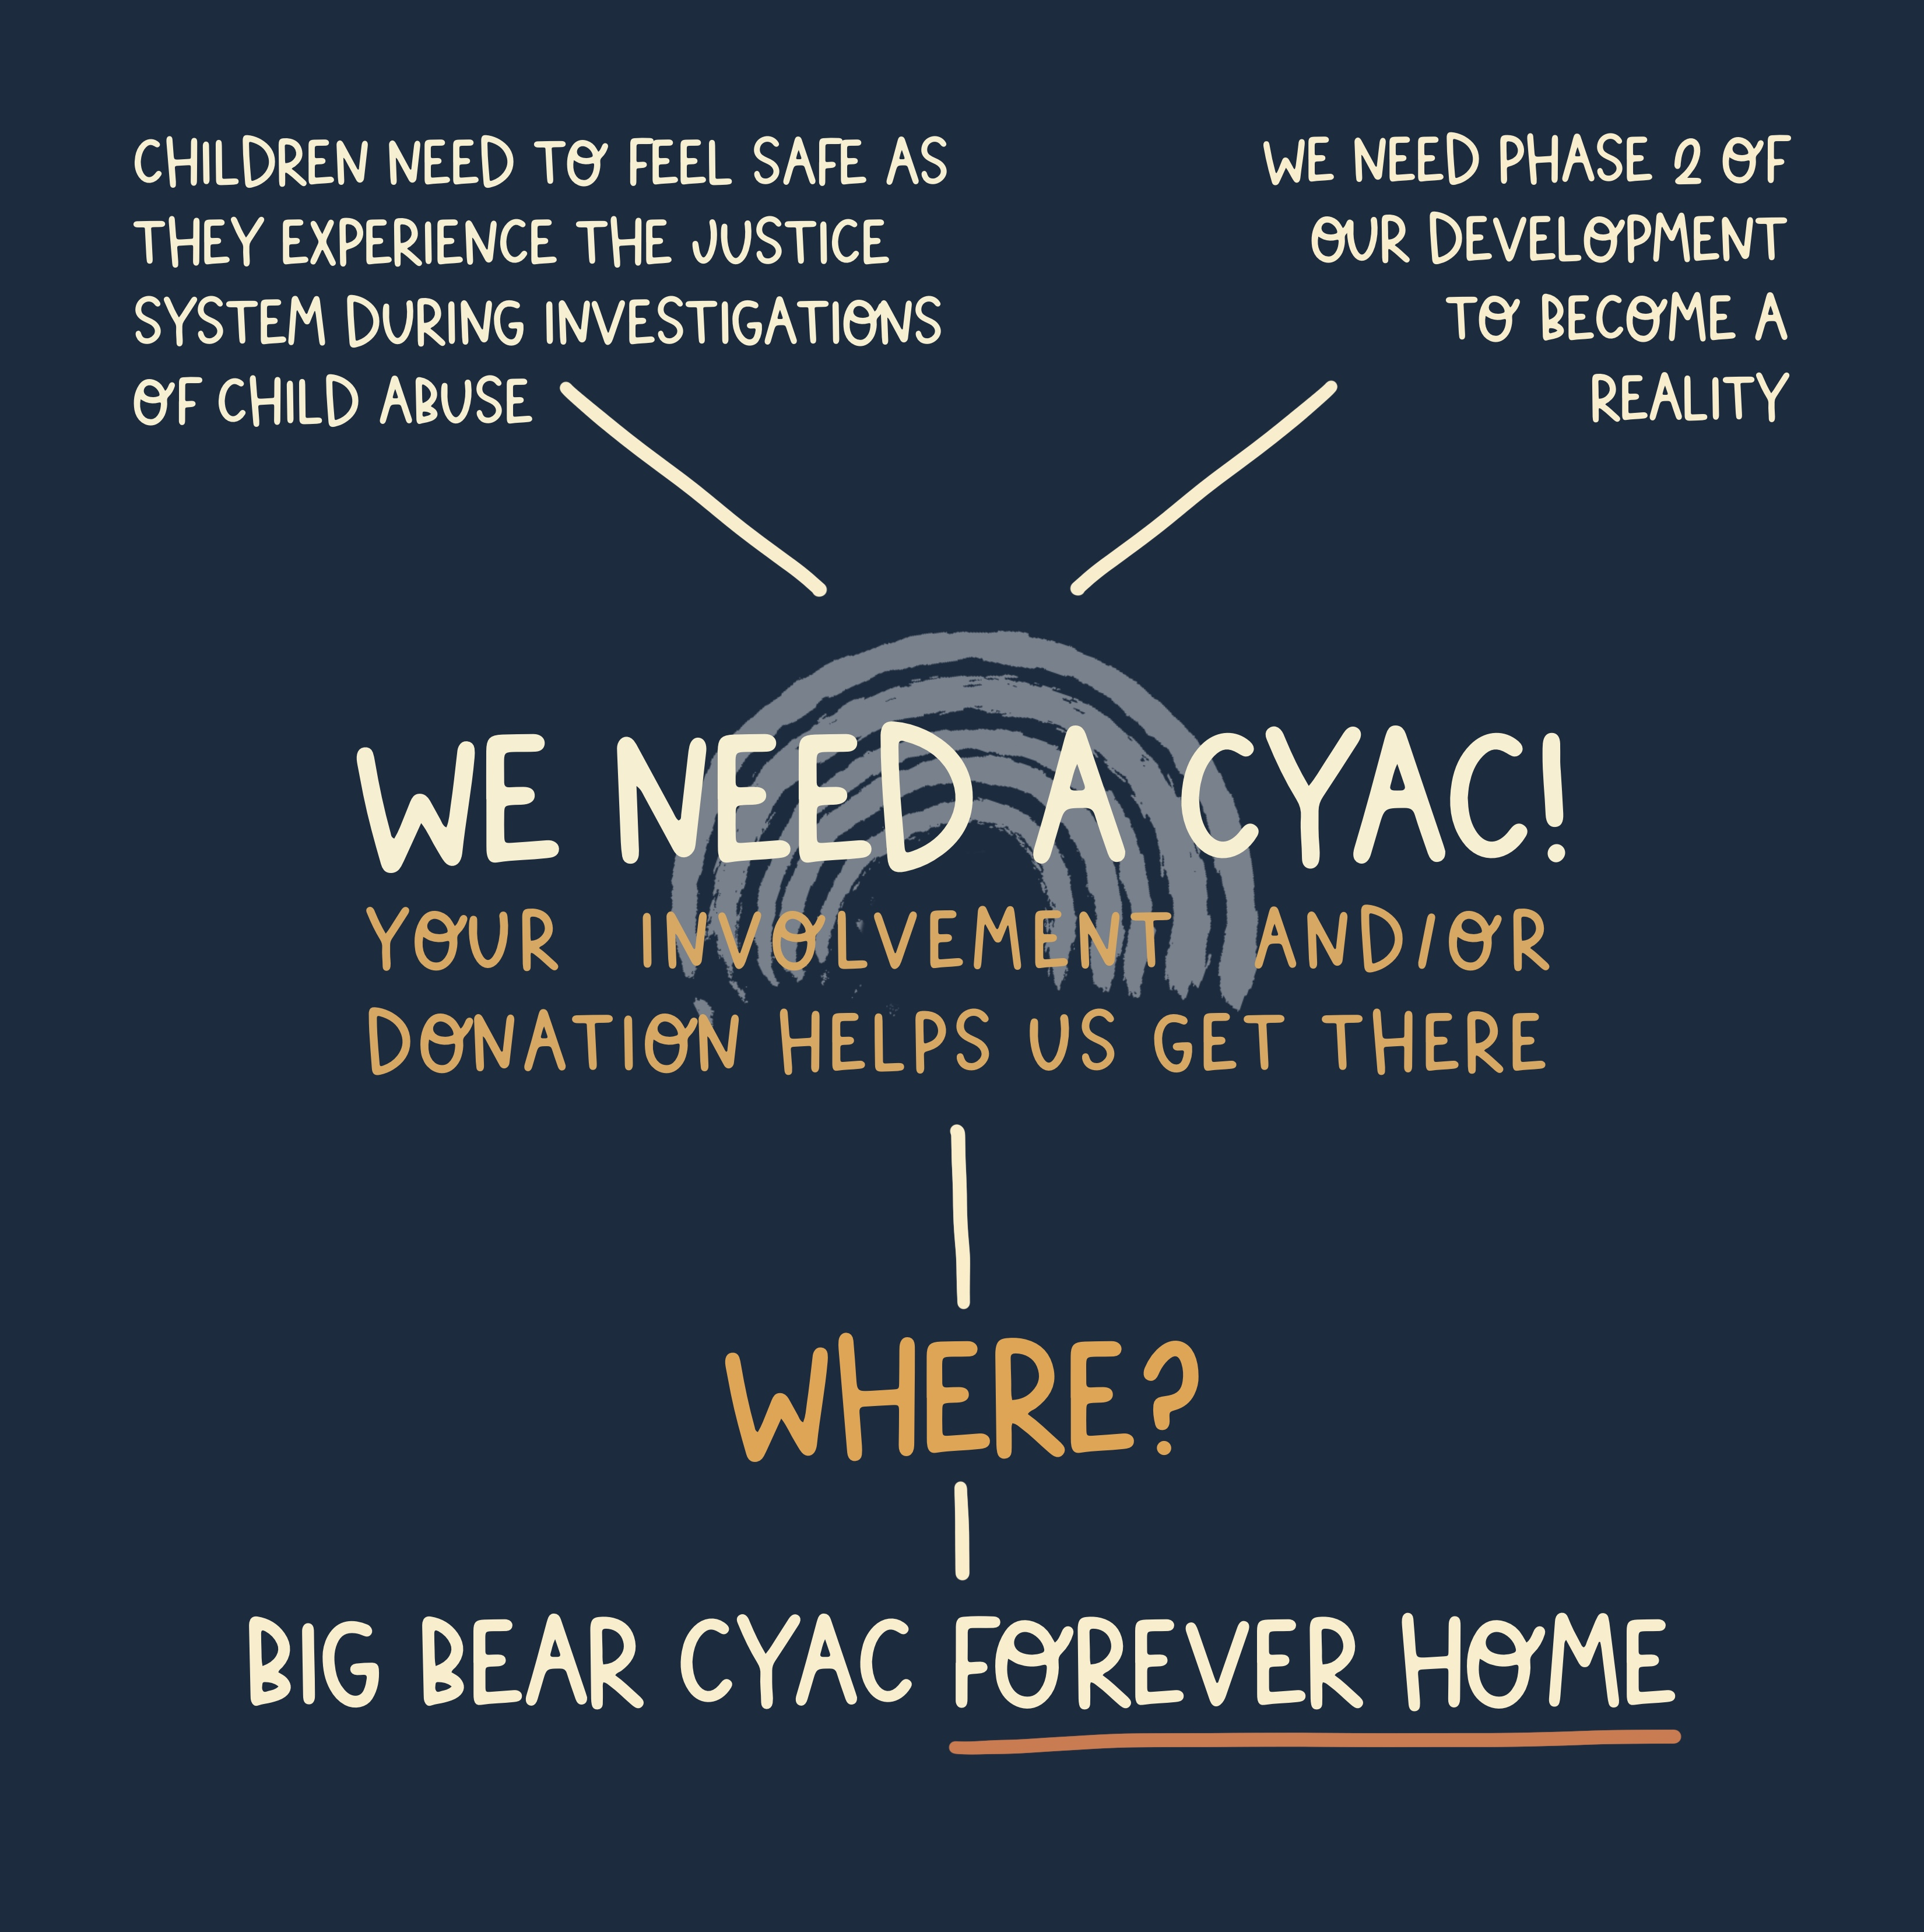 Big Bear CYAC is moving into its temporary home soon!